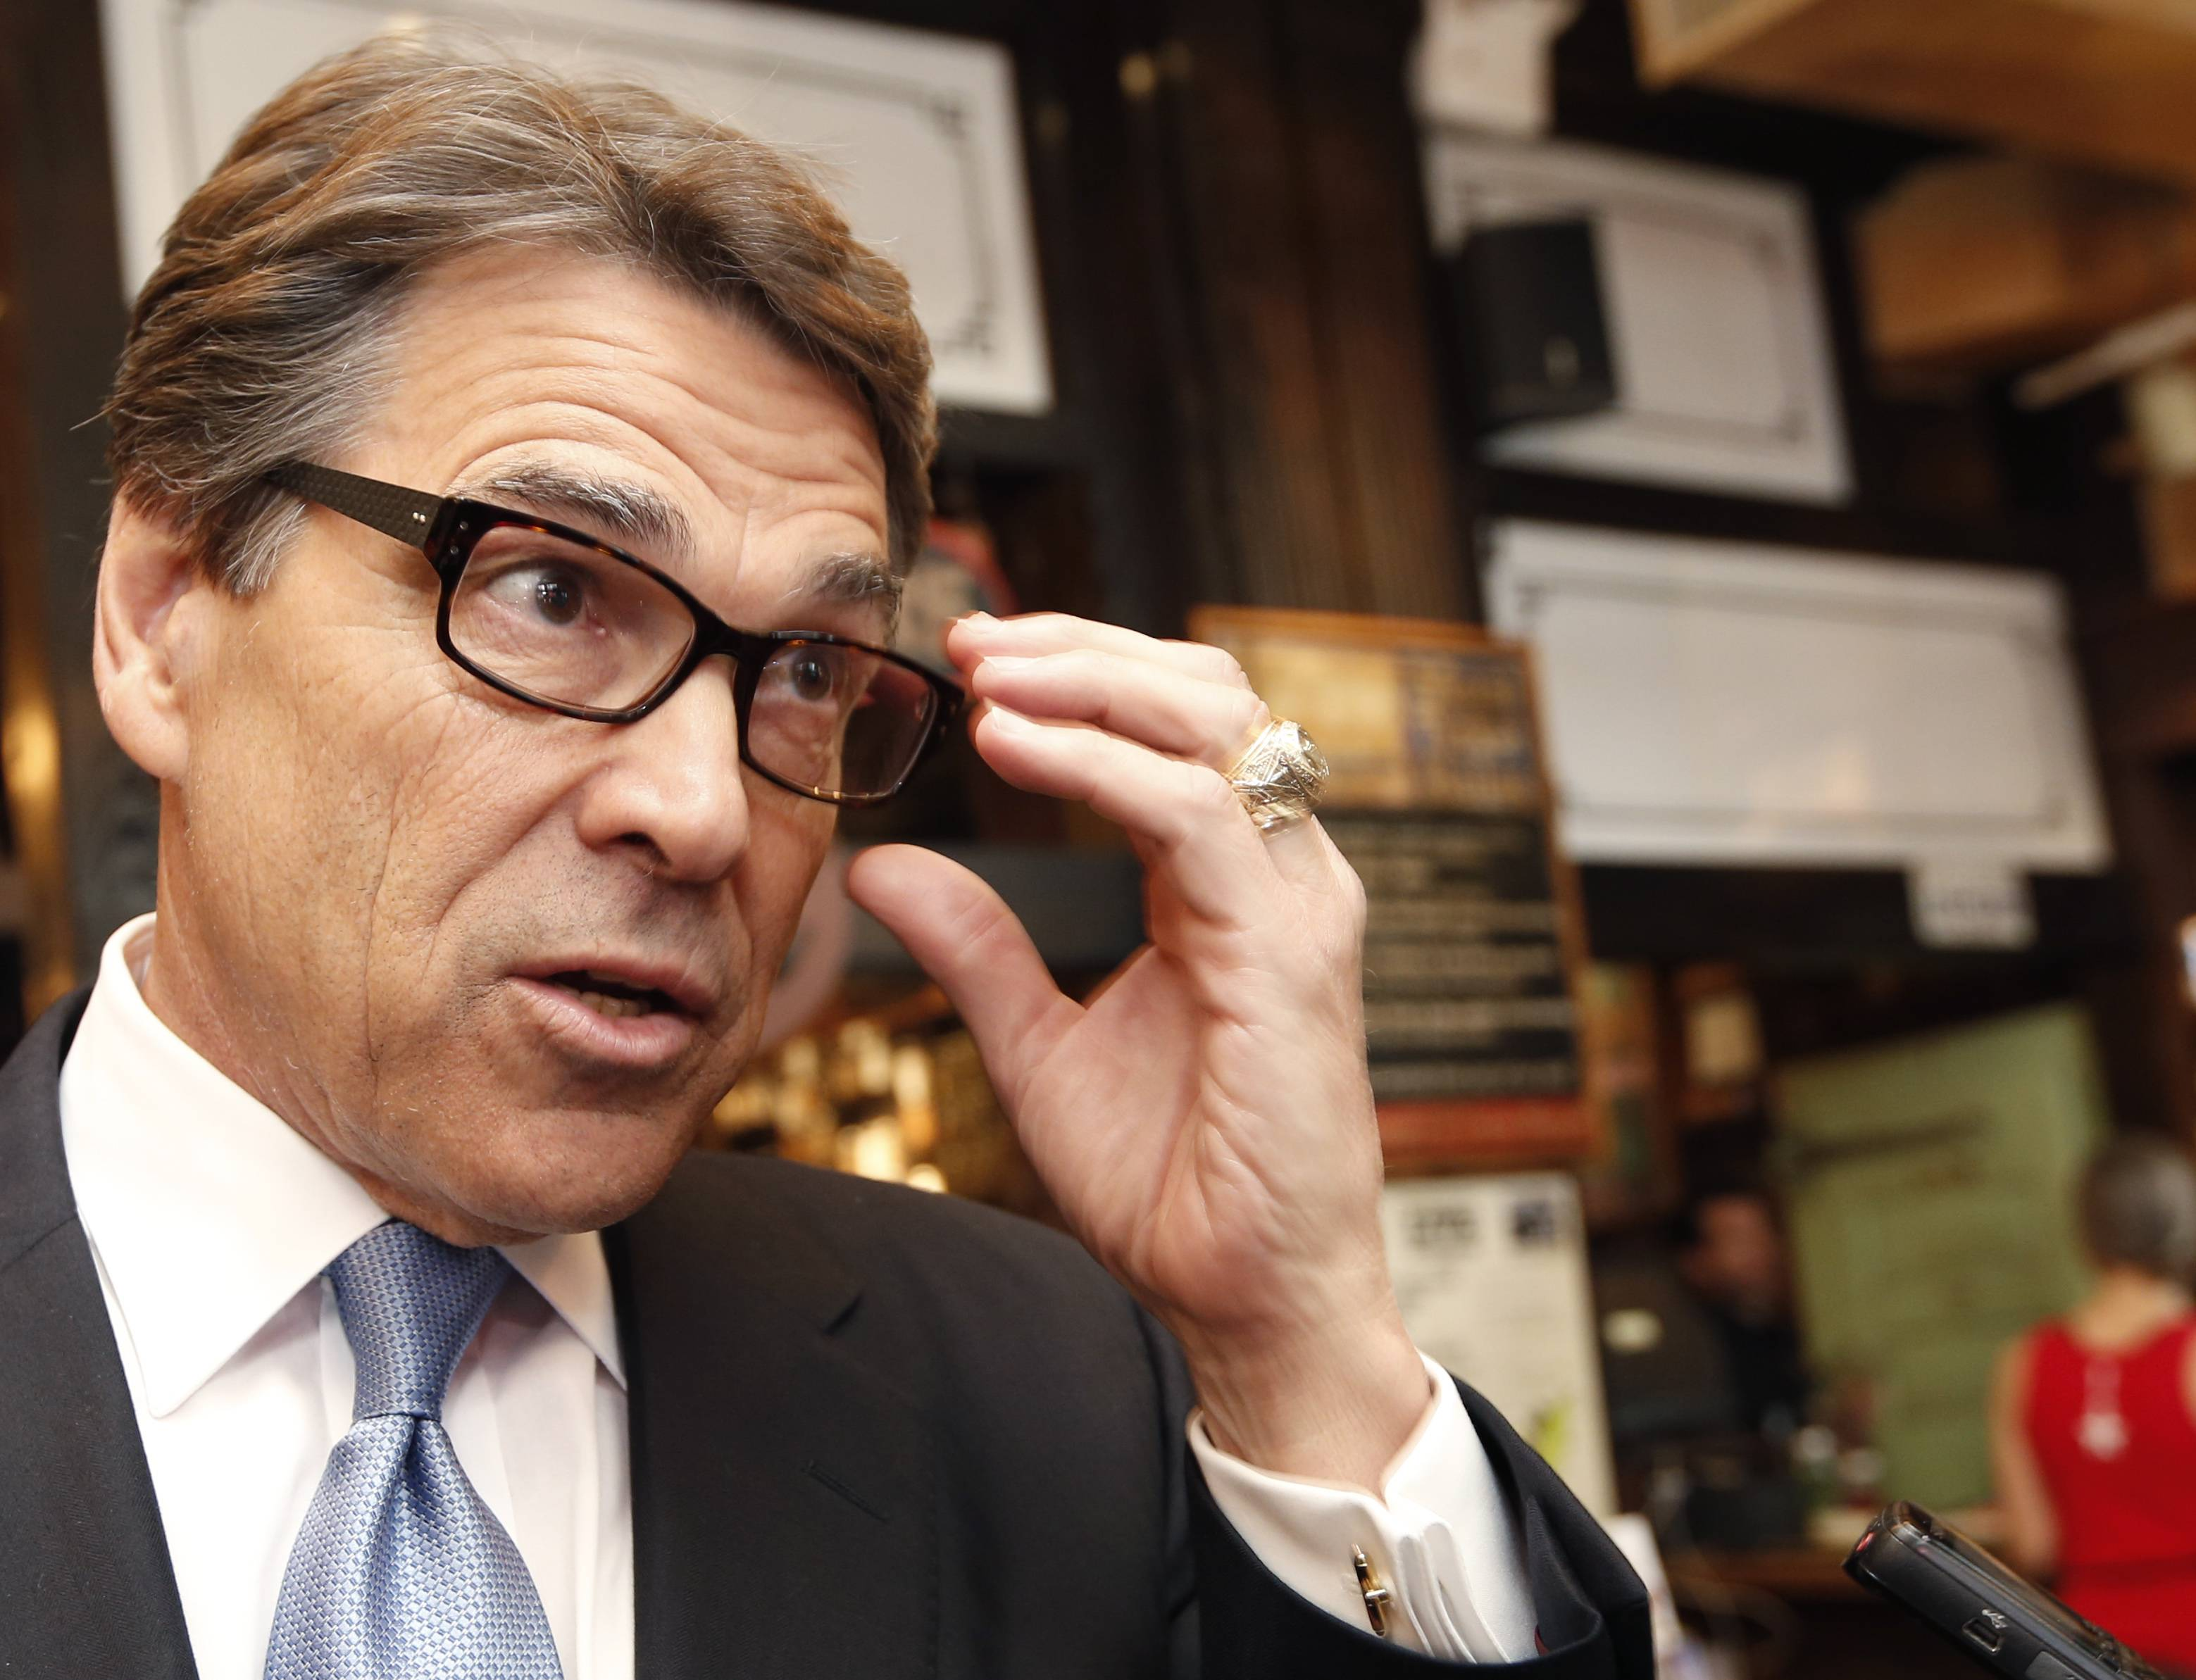 With eight months left in office, Gov. Rick Perry isn't kicking back at the governor's mansion. Rebounding from his gaffe-marred presidential run in 2012, Perry is doubling down on the argument that his low-tax, low-regulation approach as governor since 2000 has been the driving force behind Texas' tops-in-the-nation job growth.